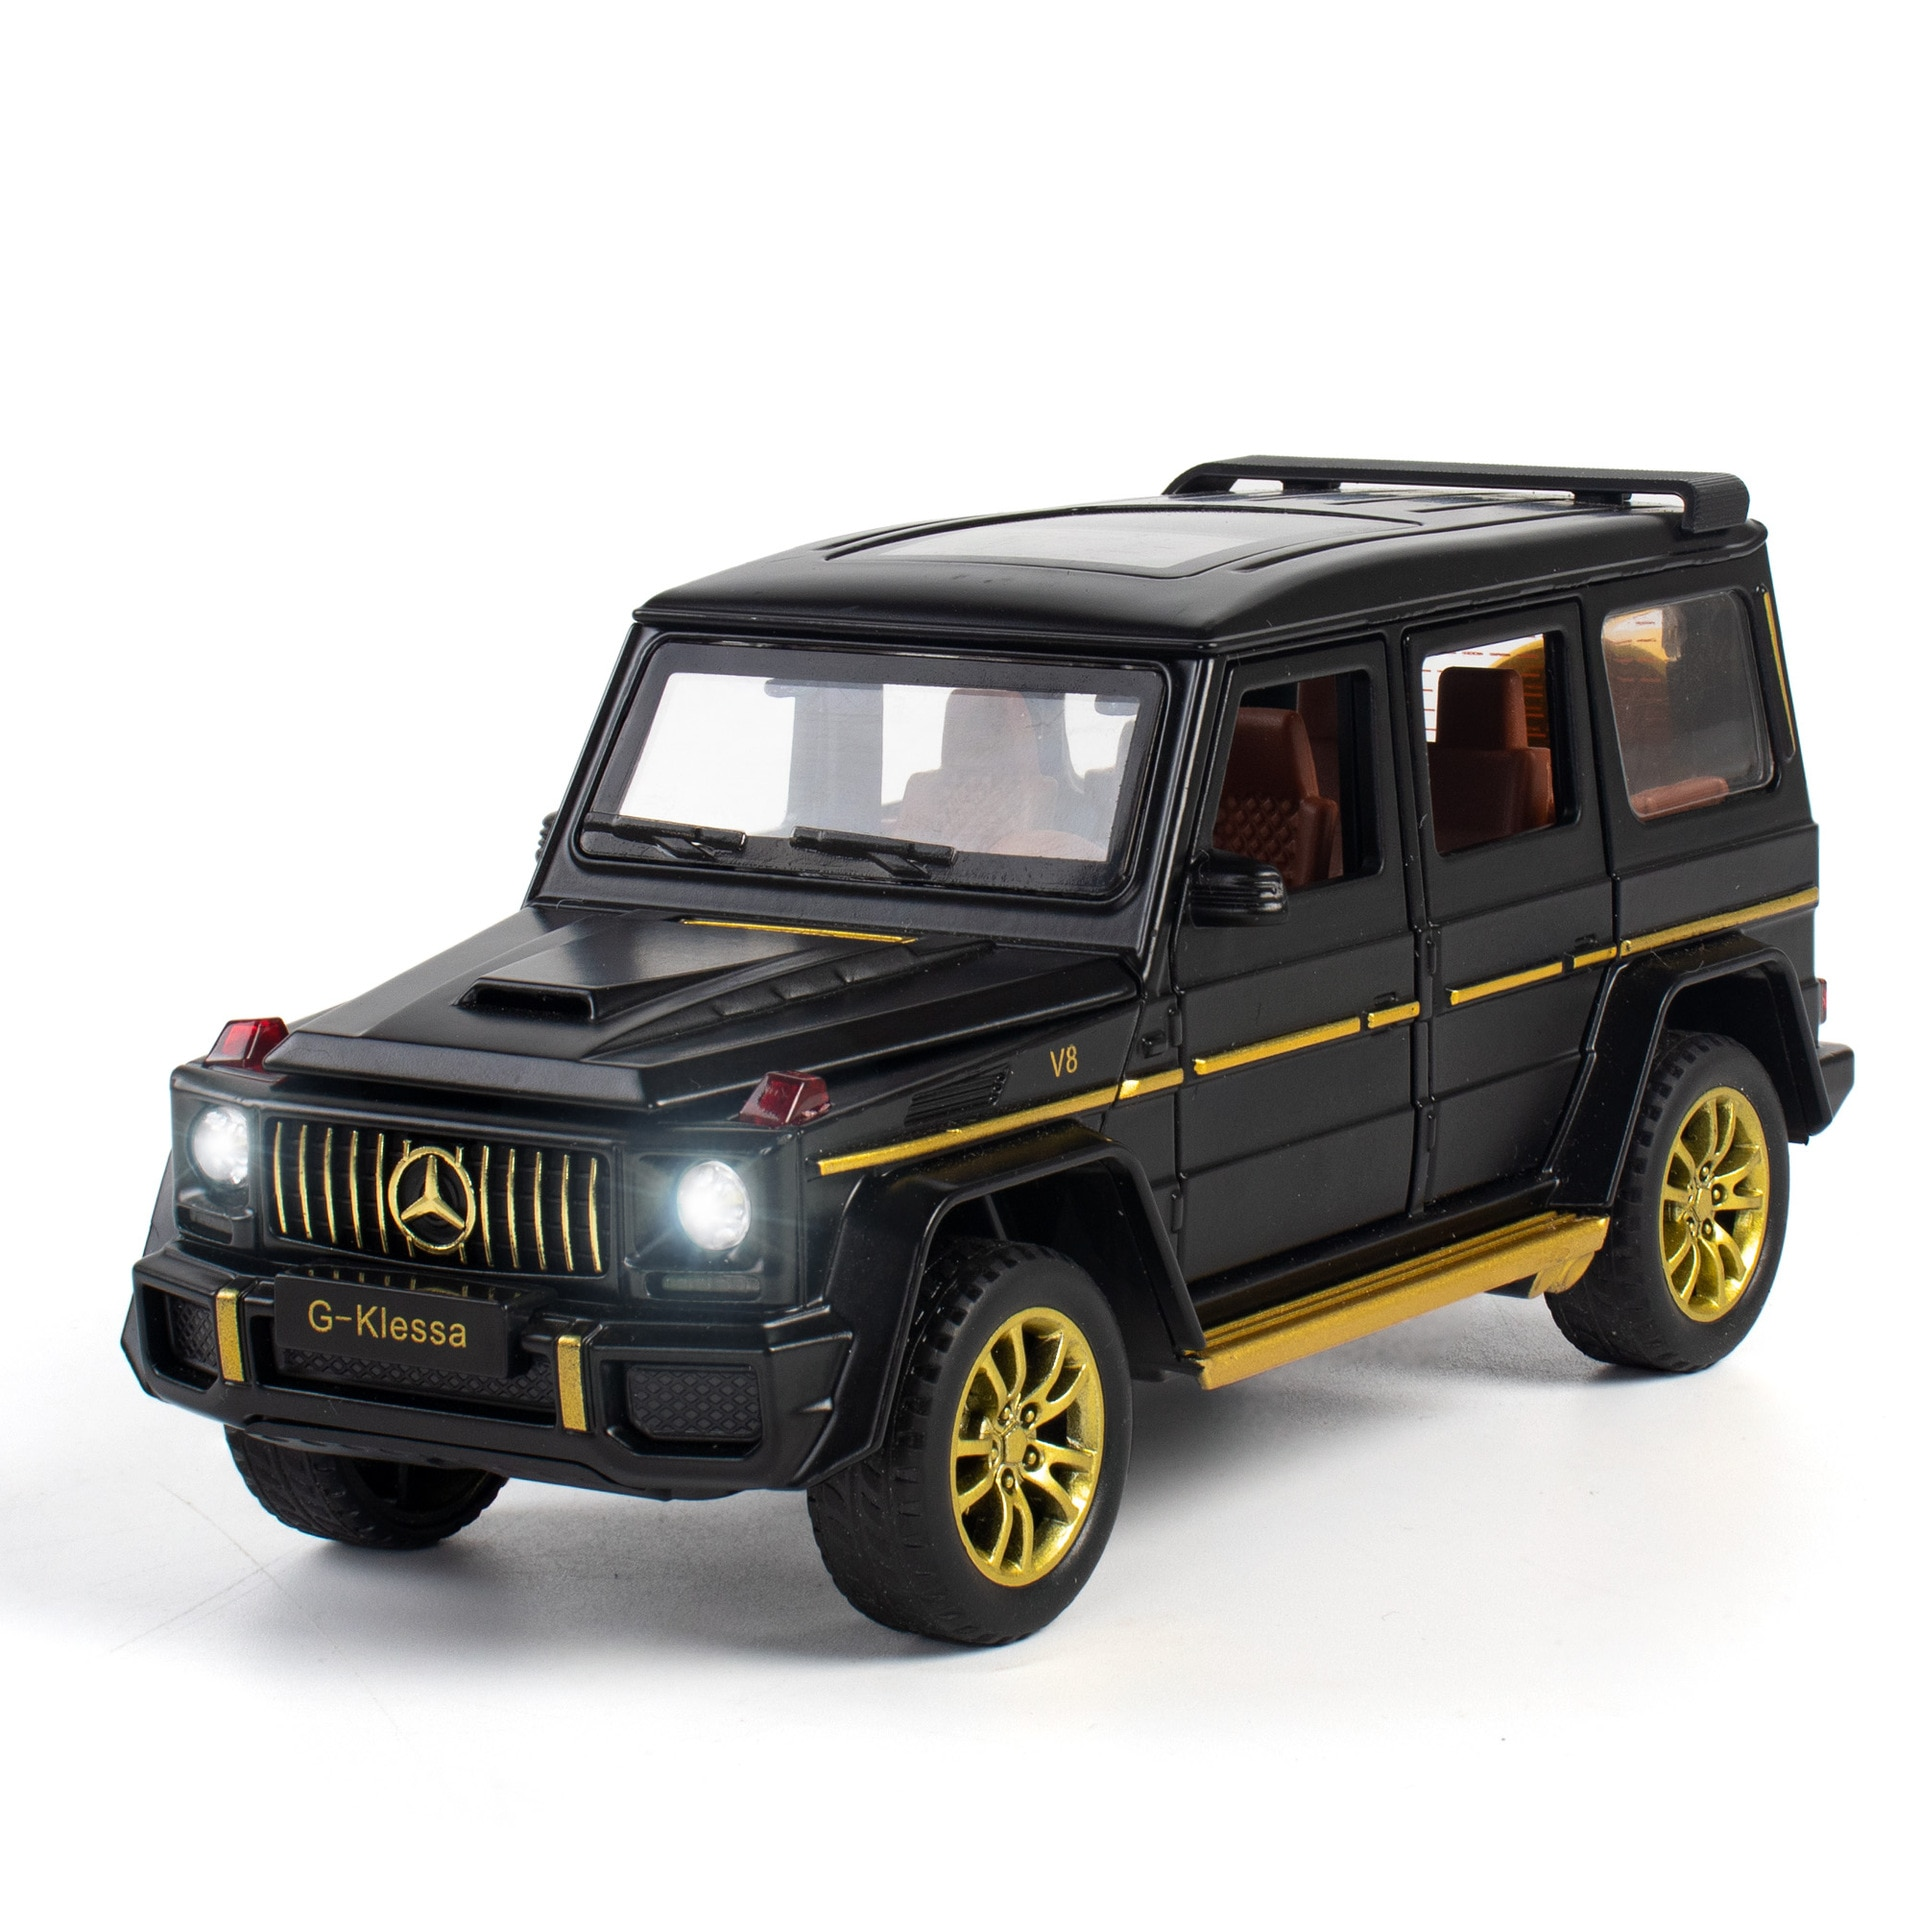 1:32 Toy Car Alloy Car Model Diecast Metal Toy Vehicles G63 Sound Light Pull Back Car Door Open For Kids Toy Birthday Gift недорого